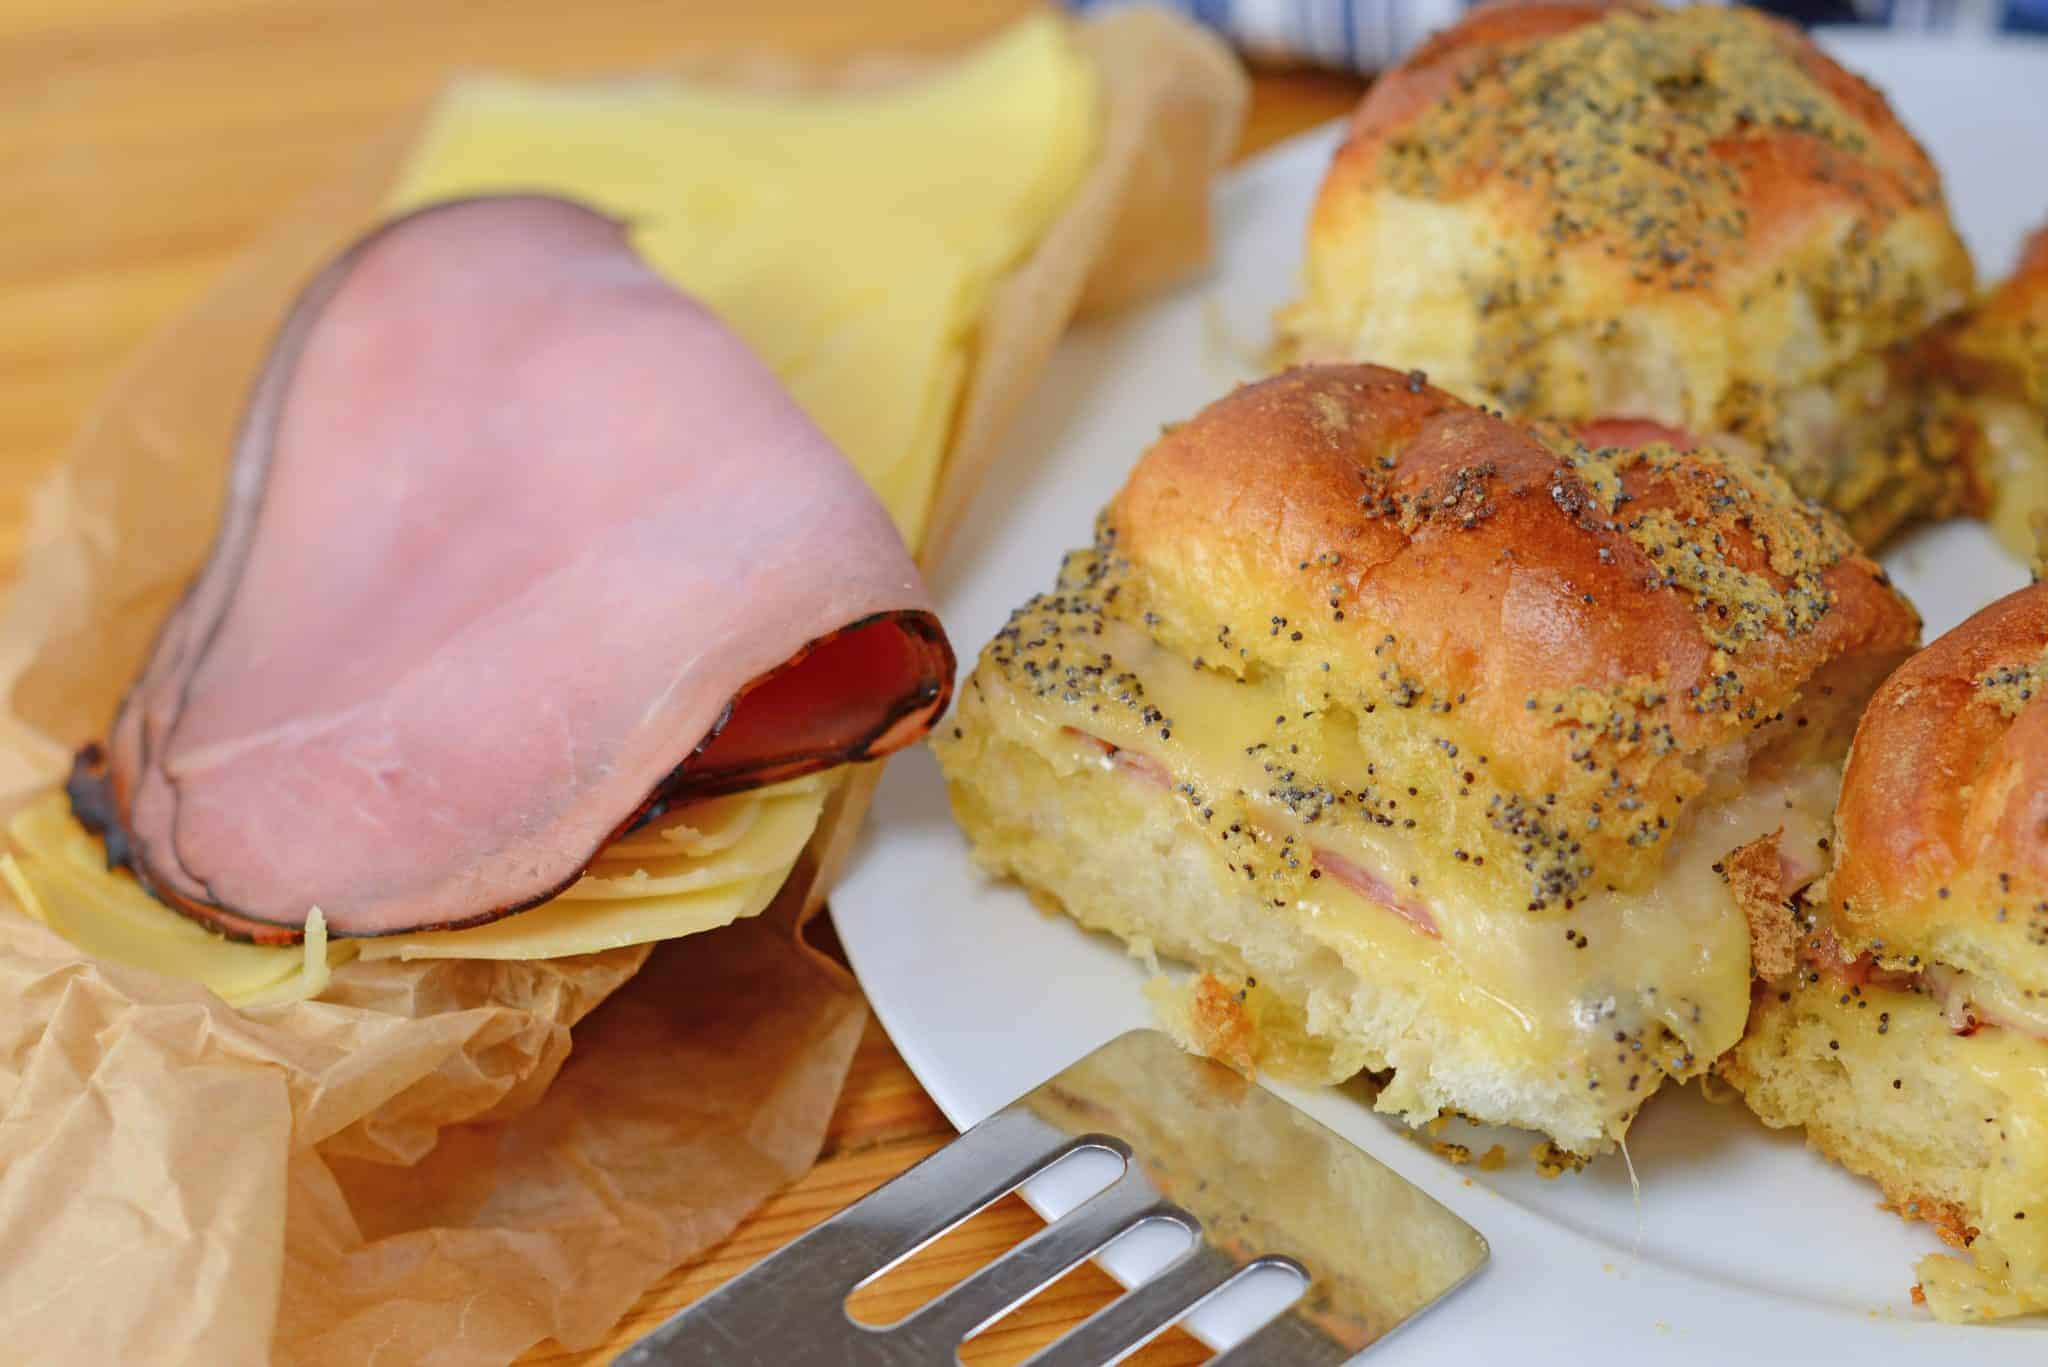 Ham and cheese sliders on a white plate with a spatula